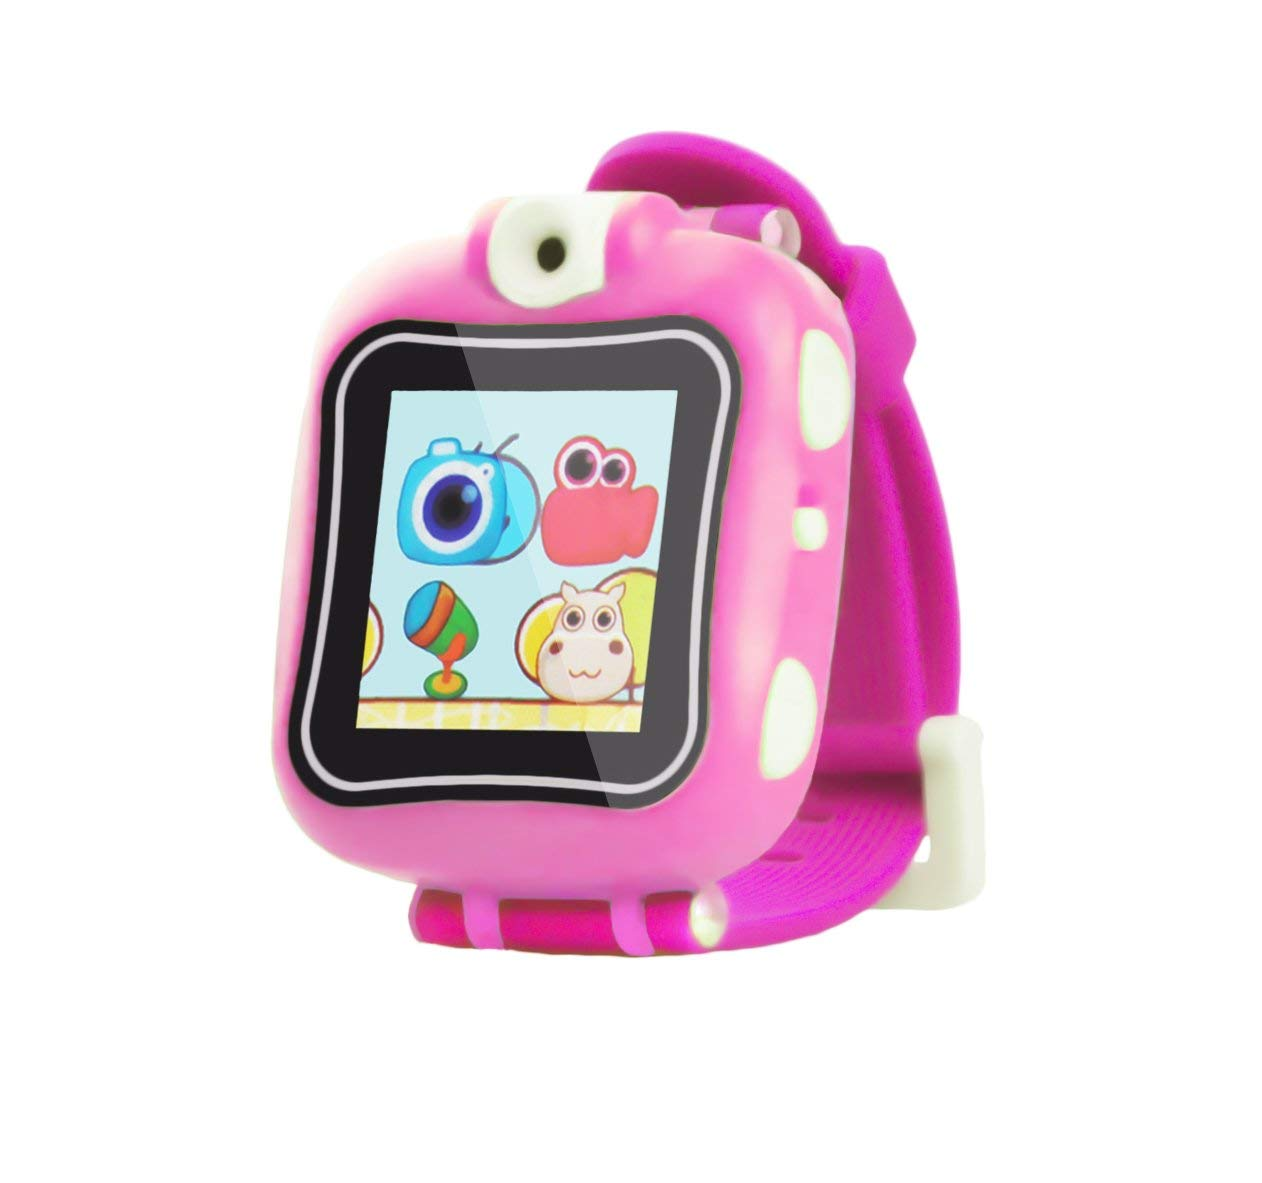 IREALIST Kids Smartwatch, Touchscreen Smart Watch with 90°Rotating Camera, Support Take Photos, Play Games, Video/Sound Recording,Timer, Alarm Clock